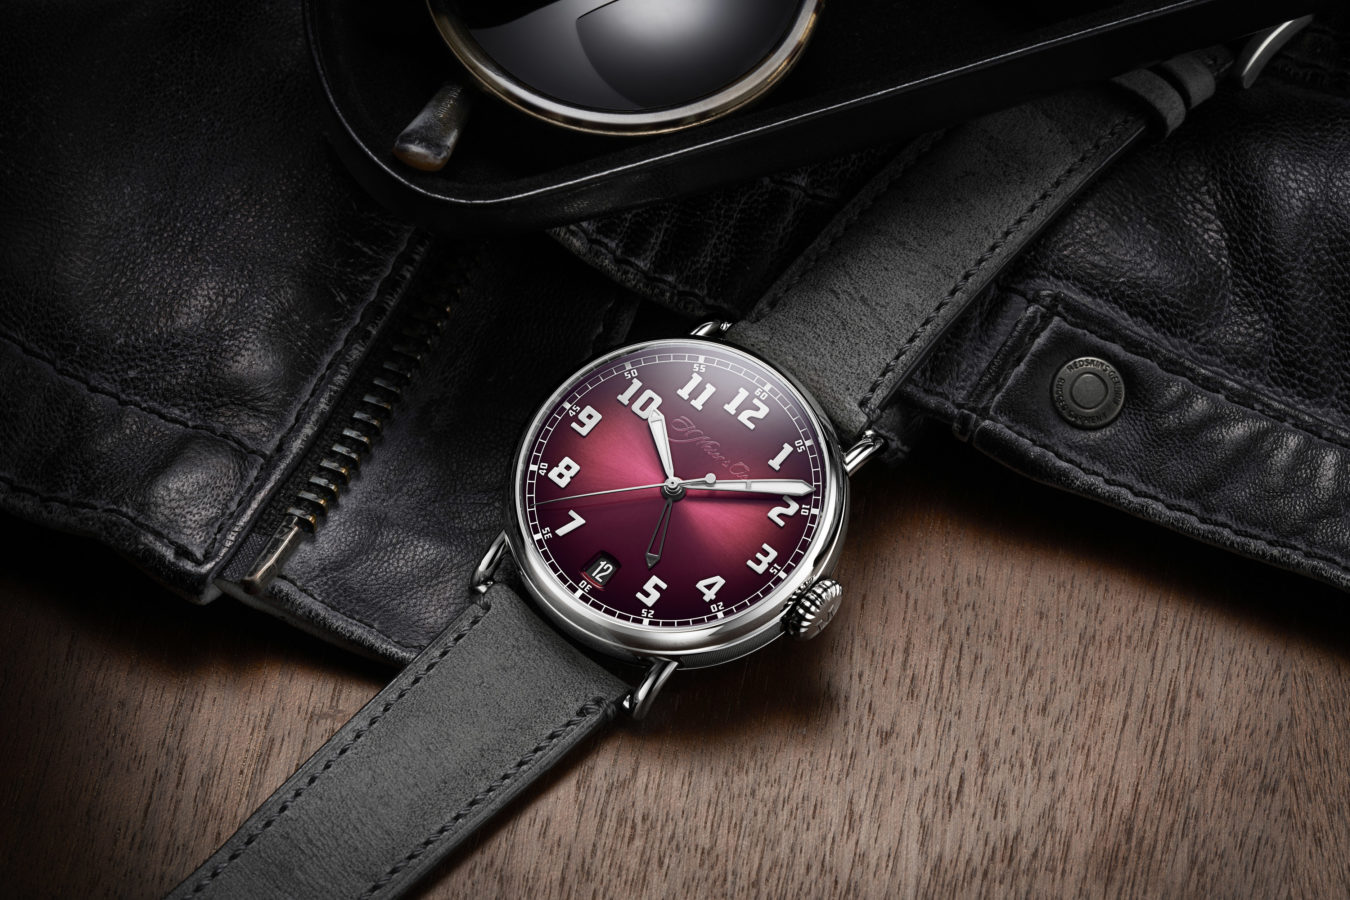 H. Moser & Cie. Reinterprets a Classic Model with the Heritage Dual Time